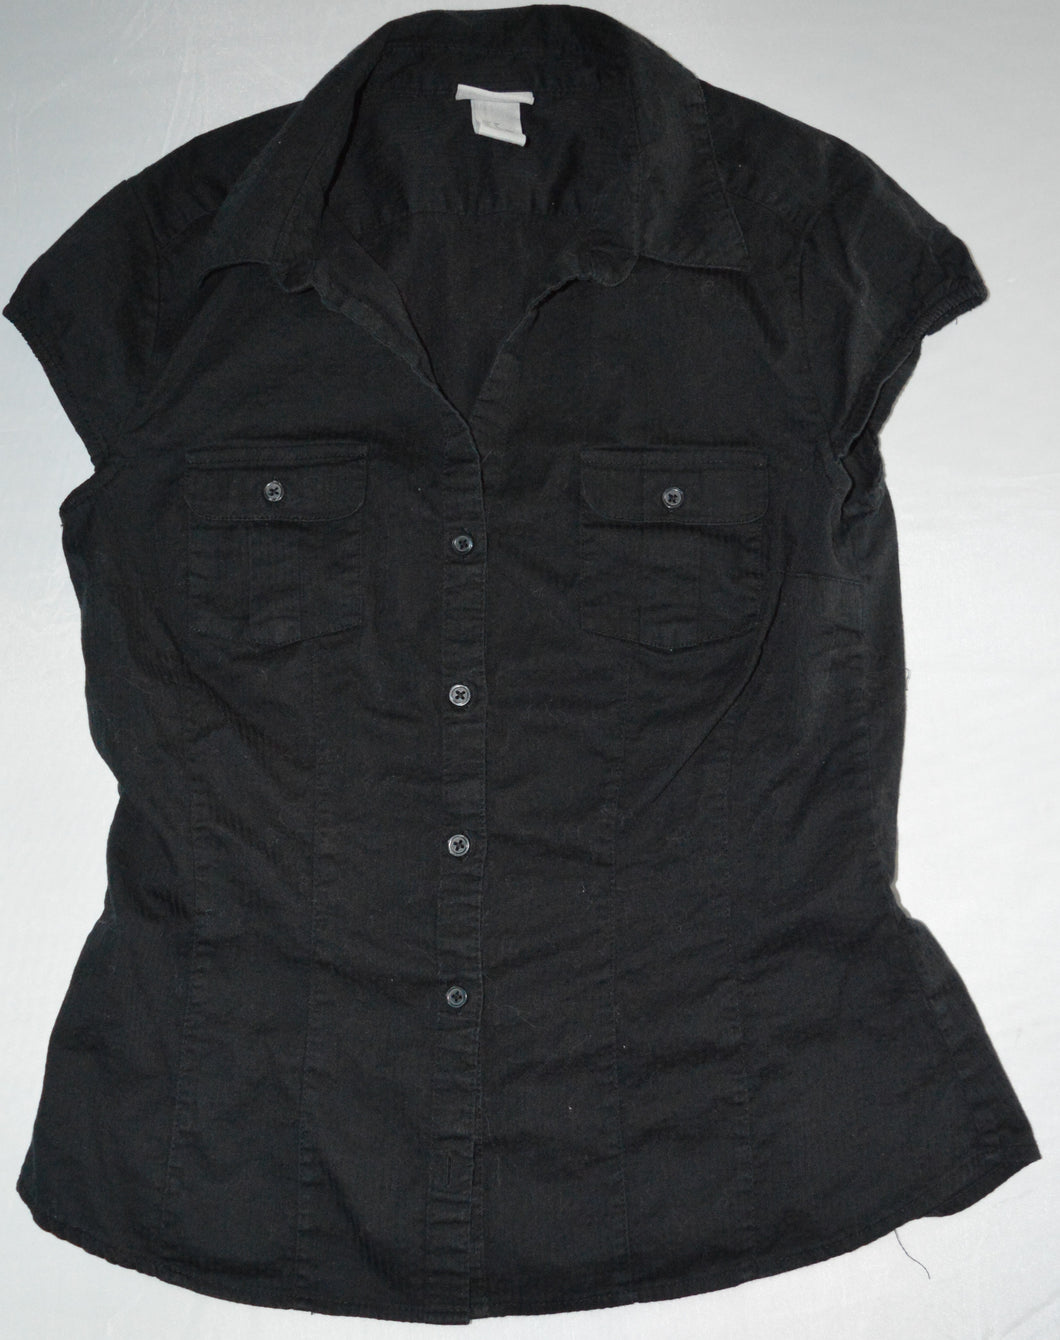 H&M Black Button-up T-shirt Blouse